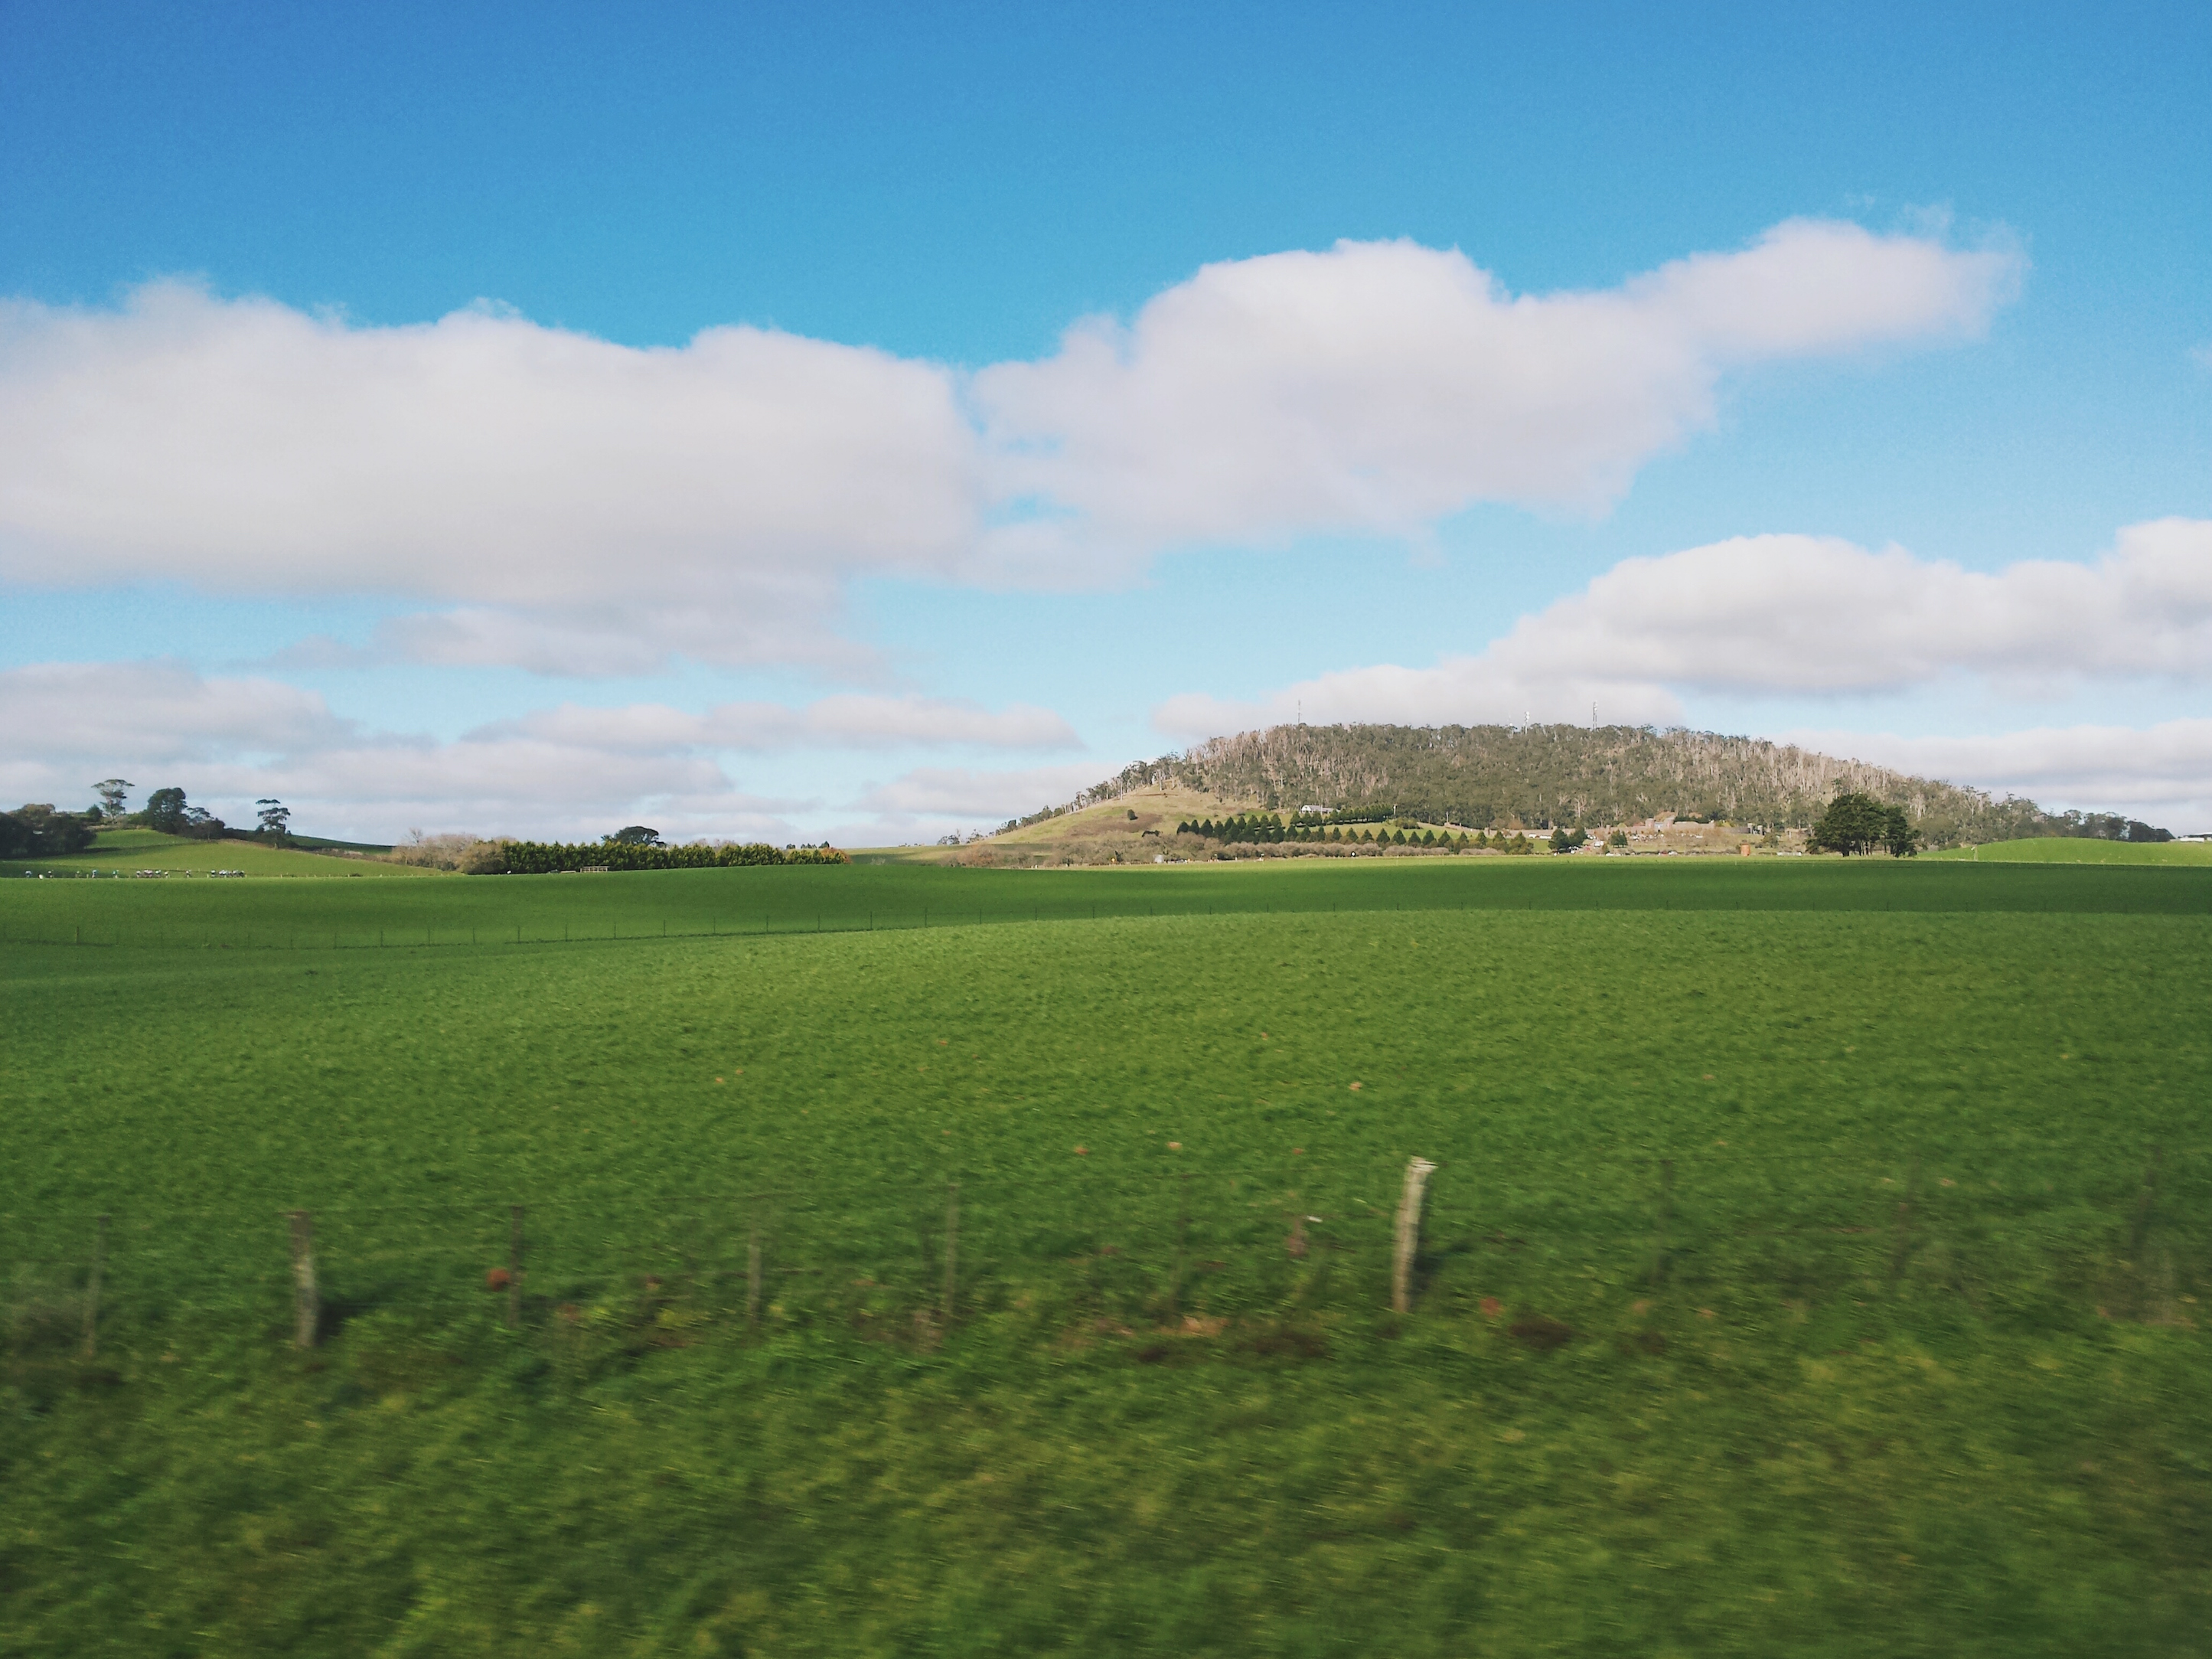 View from our bus window on the way to Ballarat, Victoria